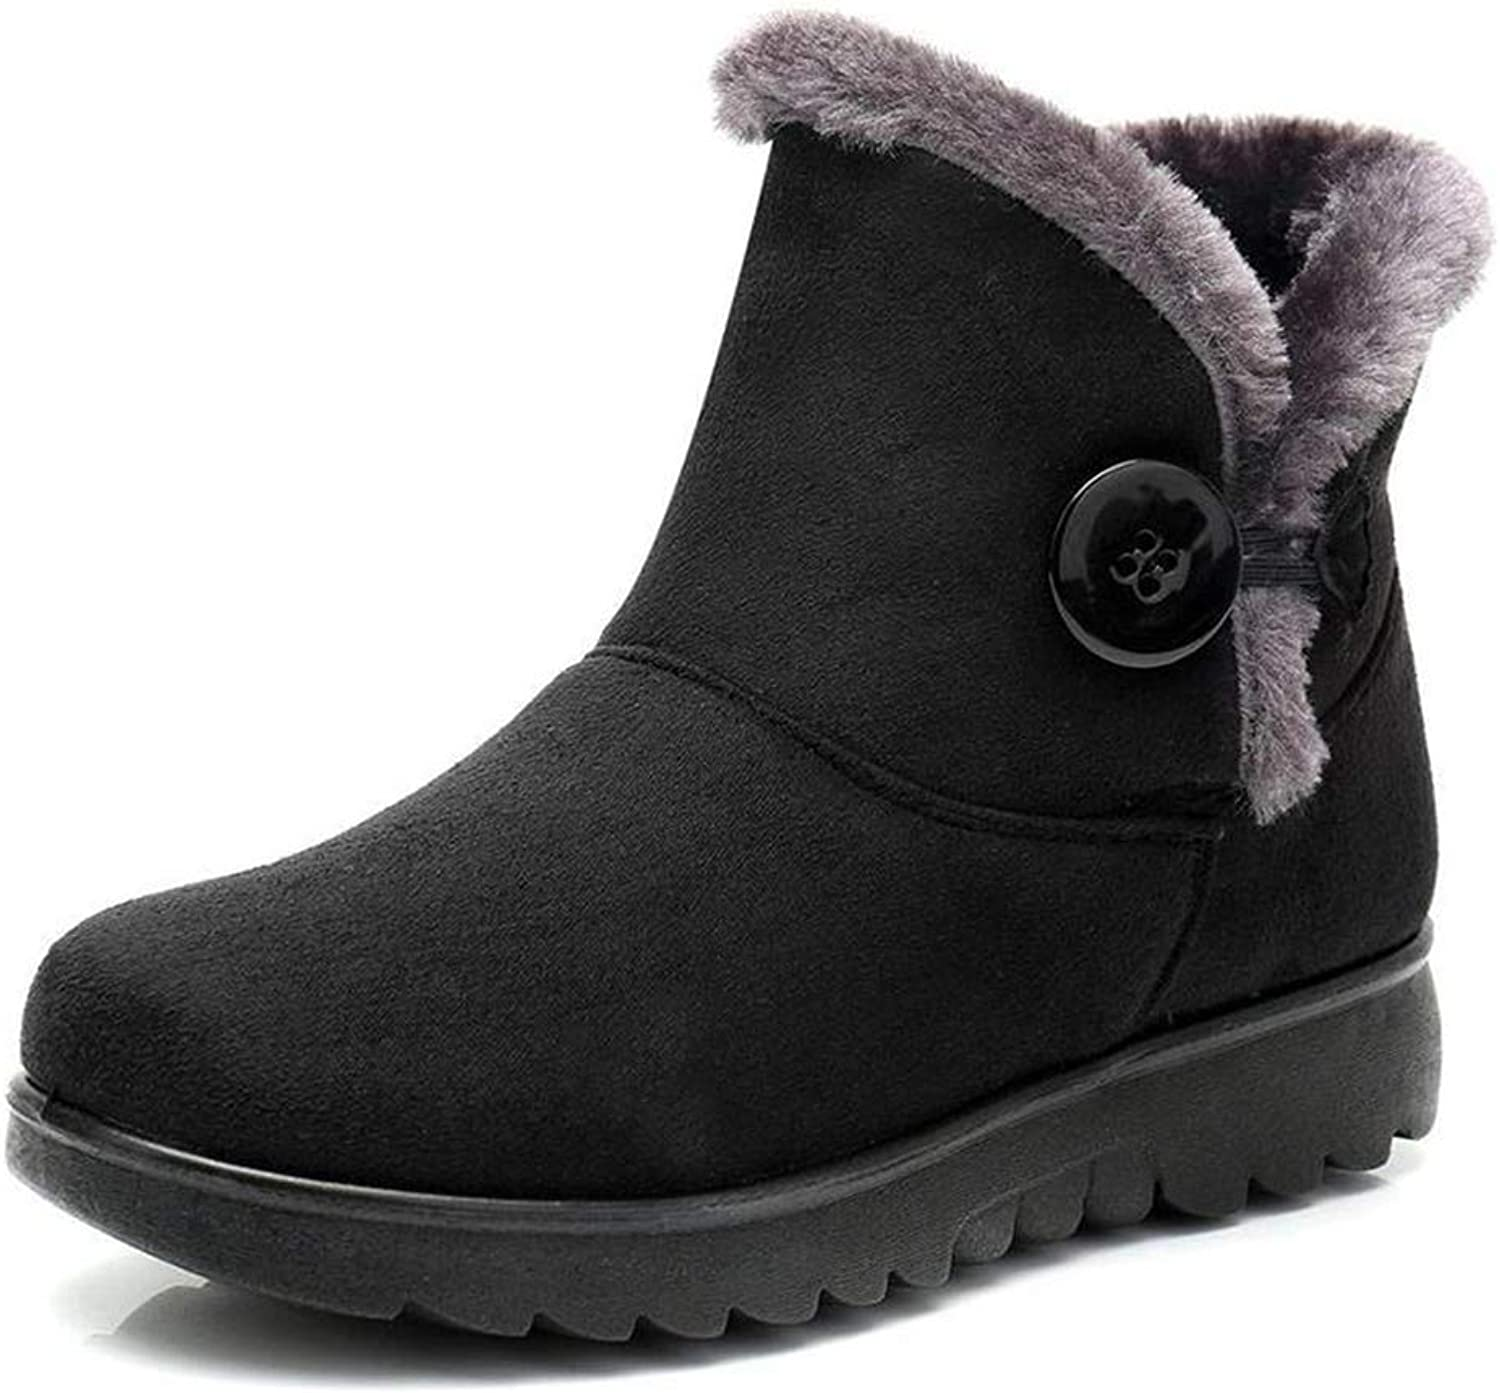 T-JULY Womens White Boots Warm Wedge Ankle Boots Girls Round Toe Flat Winter Fur Ankle Boots Snow shoes Plus Size